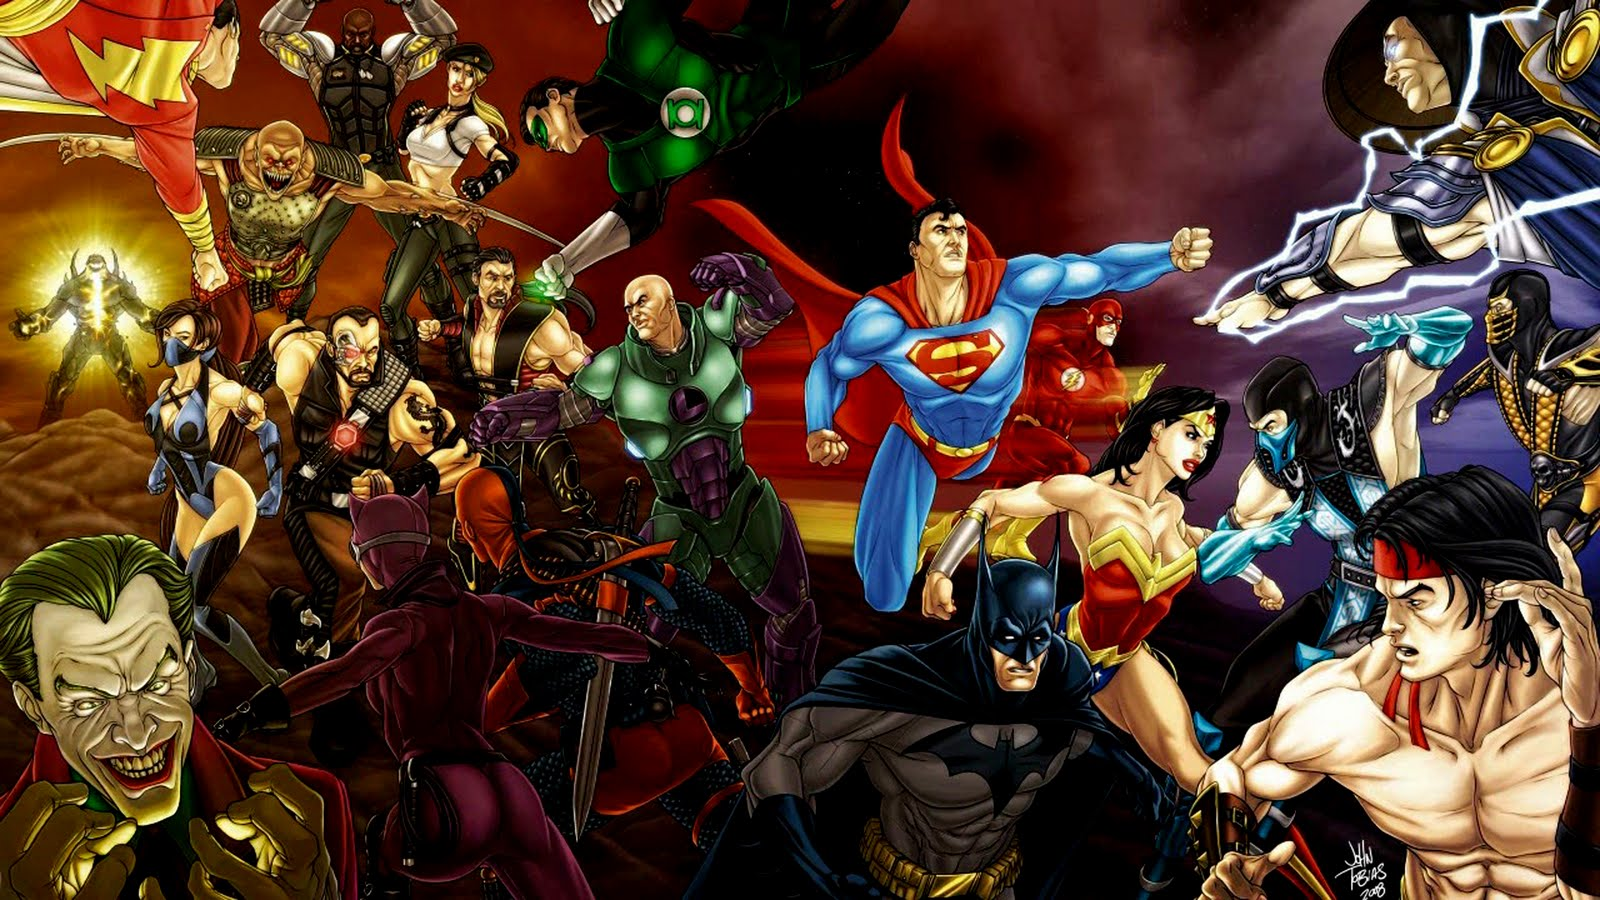 Heroes HD Wallpapers Download Wallpapers in HD for your Desktop 1600x900